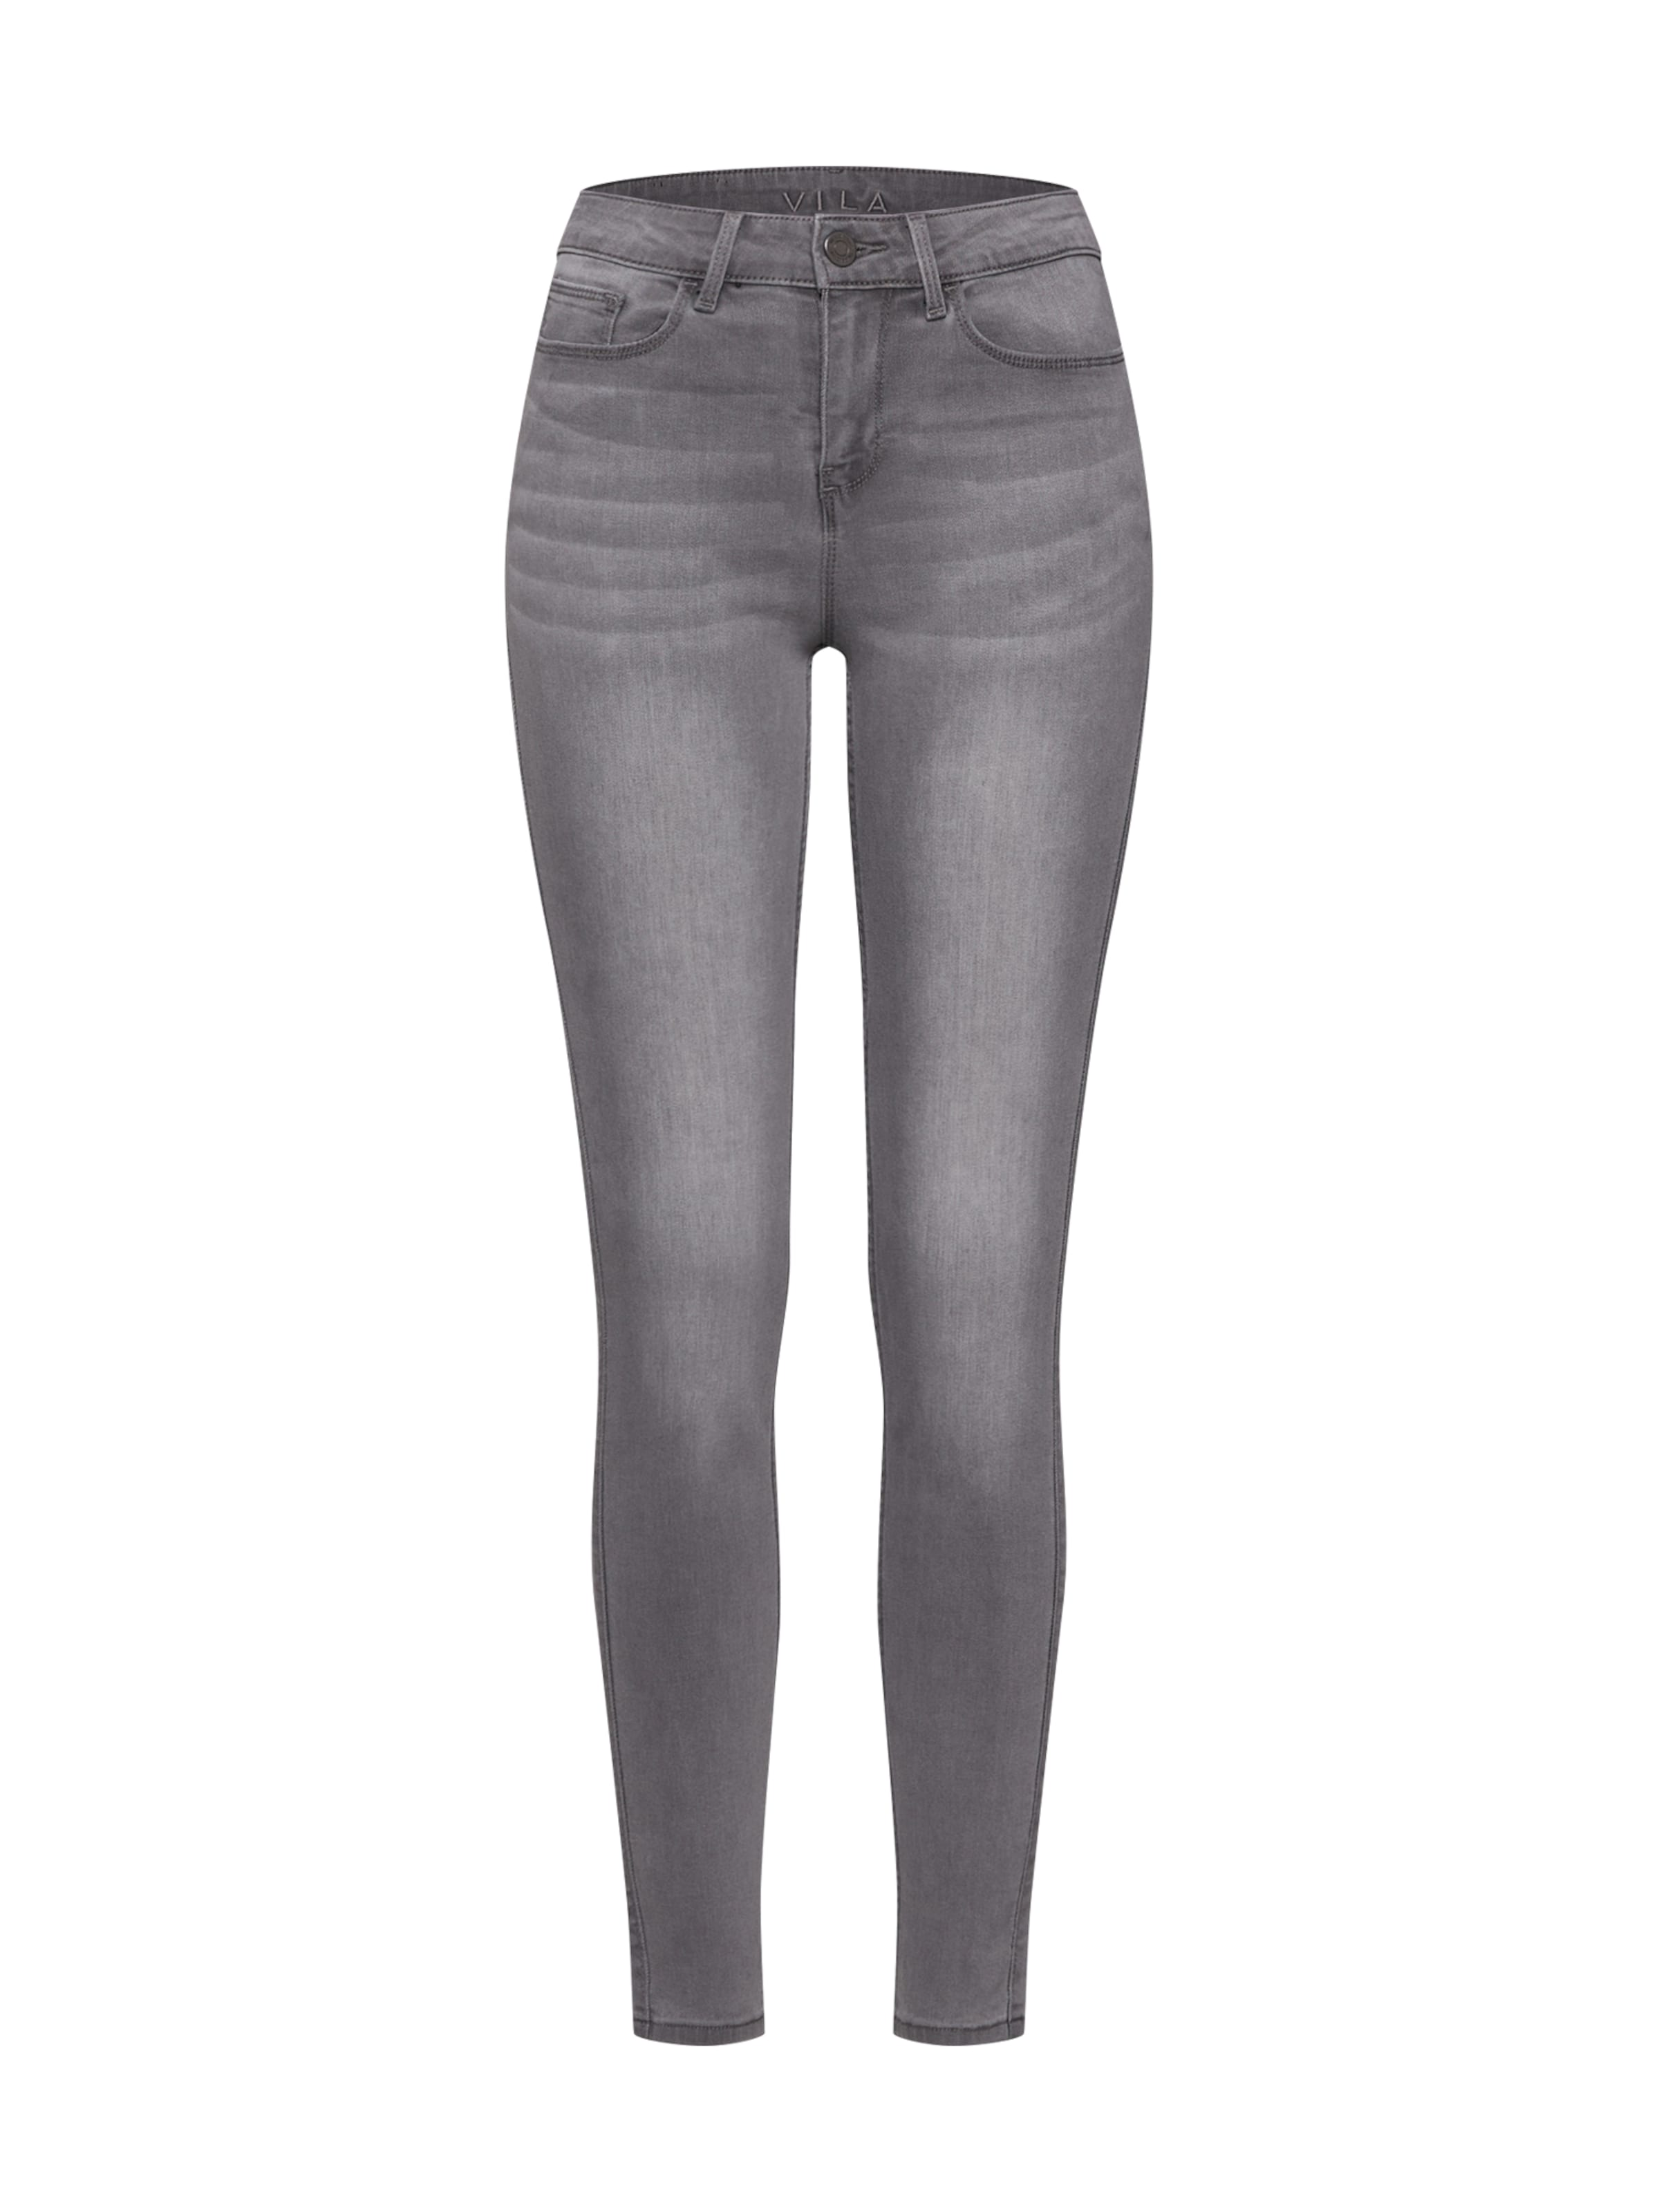 Jeans Felicia' 'vicommit Denim Grey In Vila CxoWrdBe